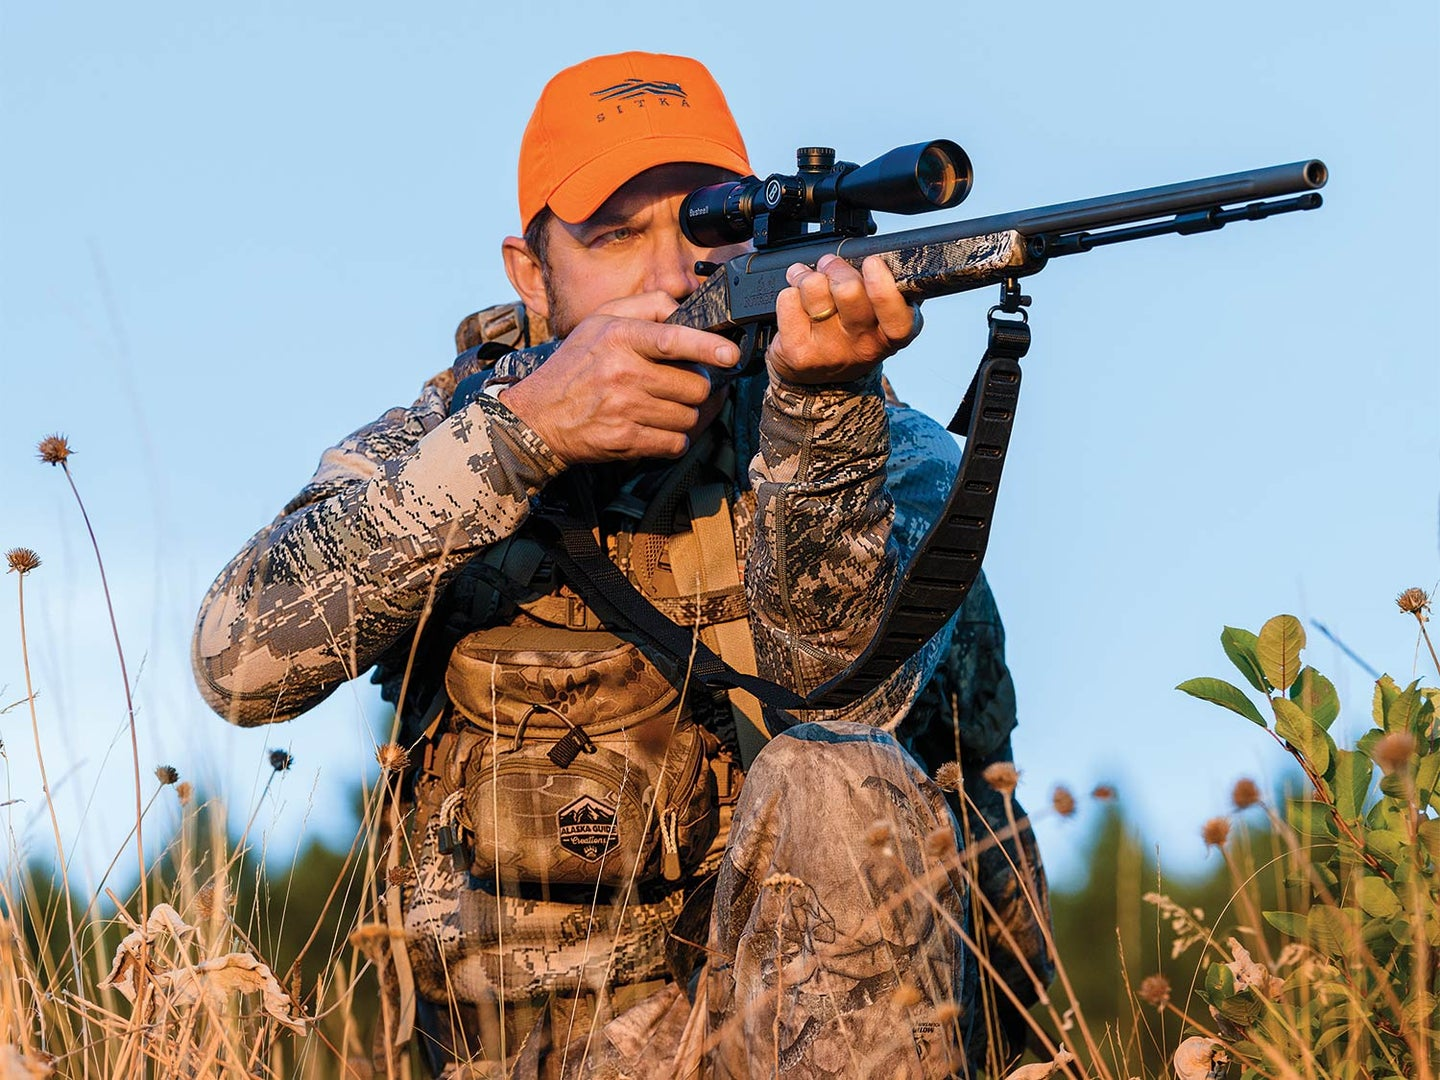 A hunter in full camo and orange cap holds a rifle to their shoulder while aiming, preparing to fire.